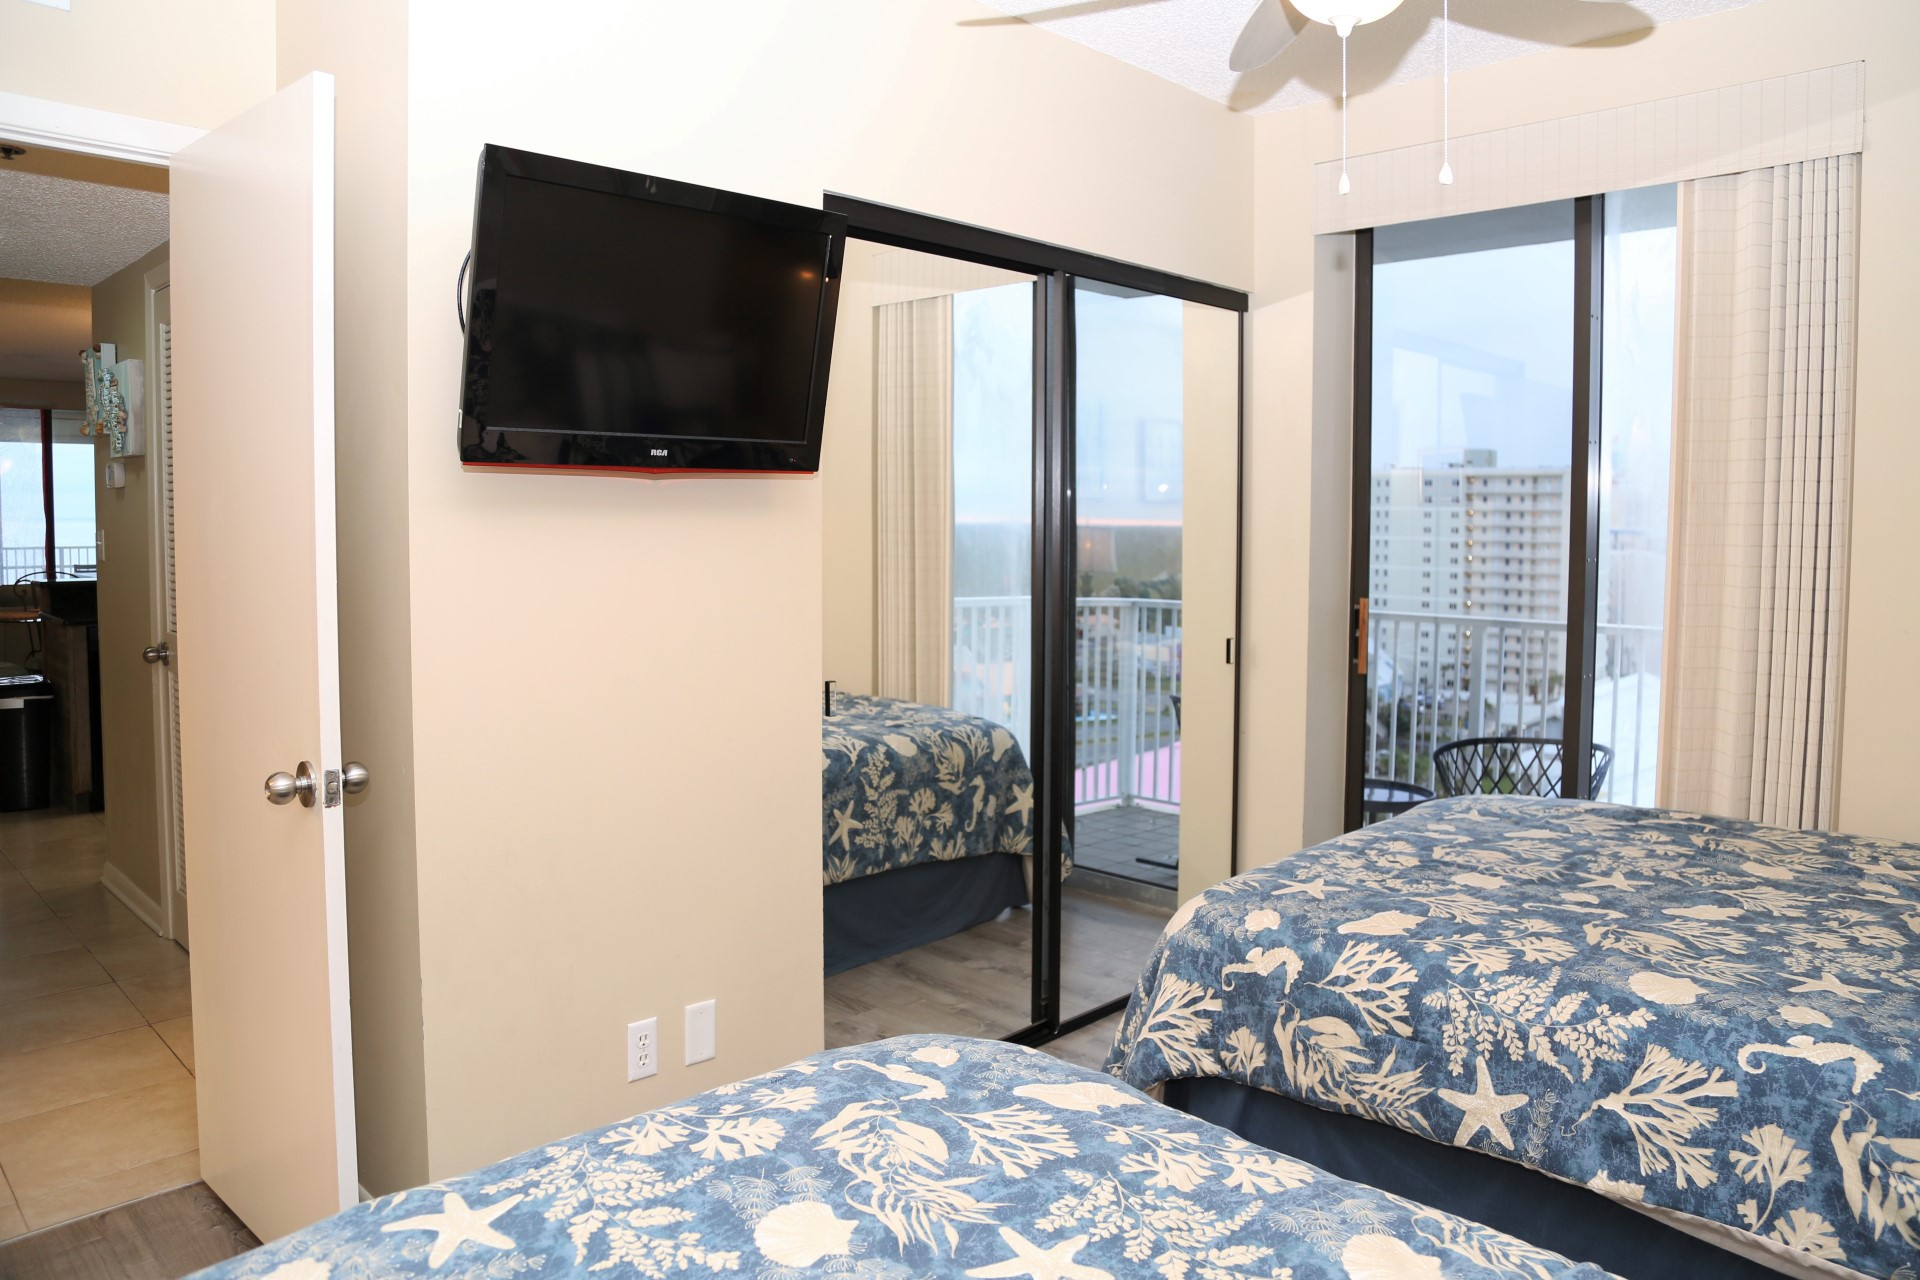 The third bedroom with TV, closet for storage, and direct ac